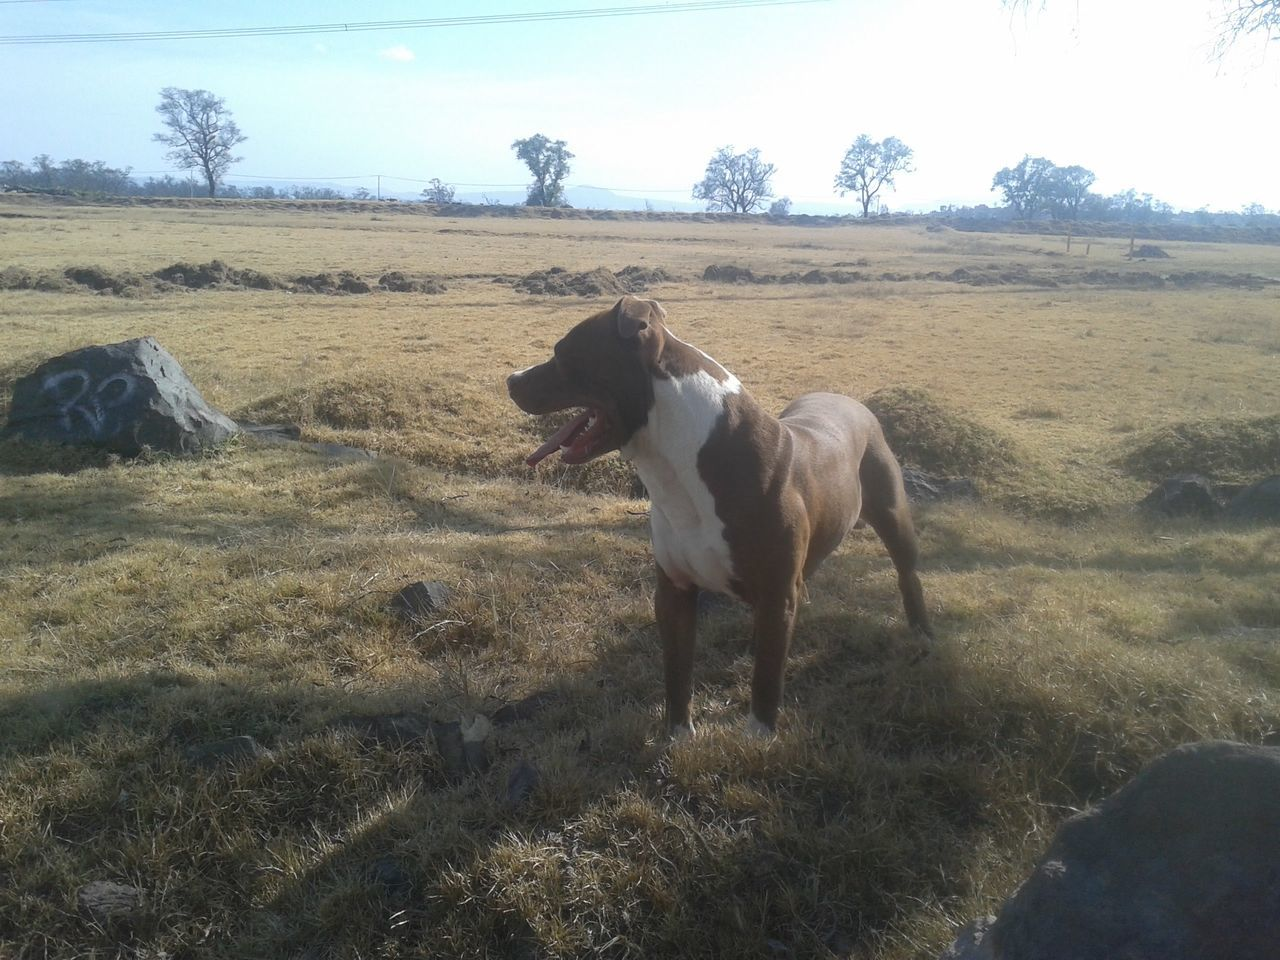 domestic animals, animal themes, mammal, field, horse, day, landscape, outdoors, grass, nature, one animal, dog, pets, sky, livestock, no people, tree, standing, full length